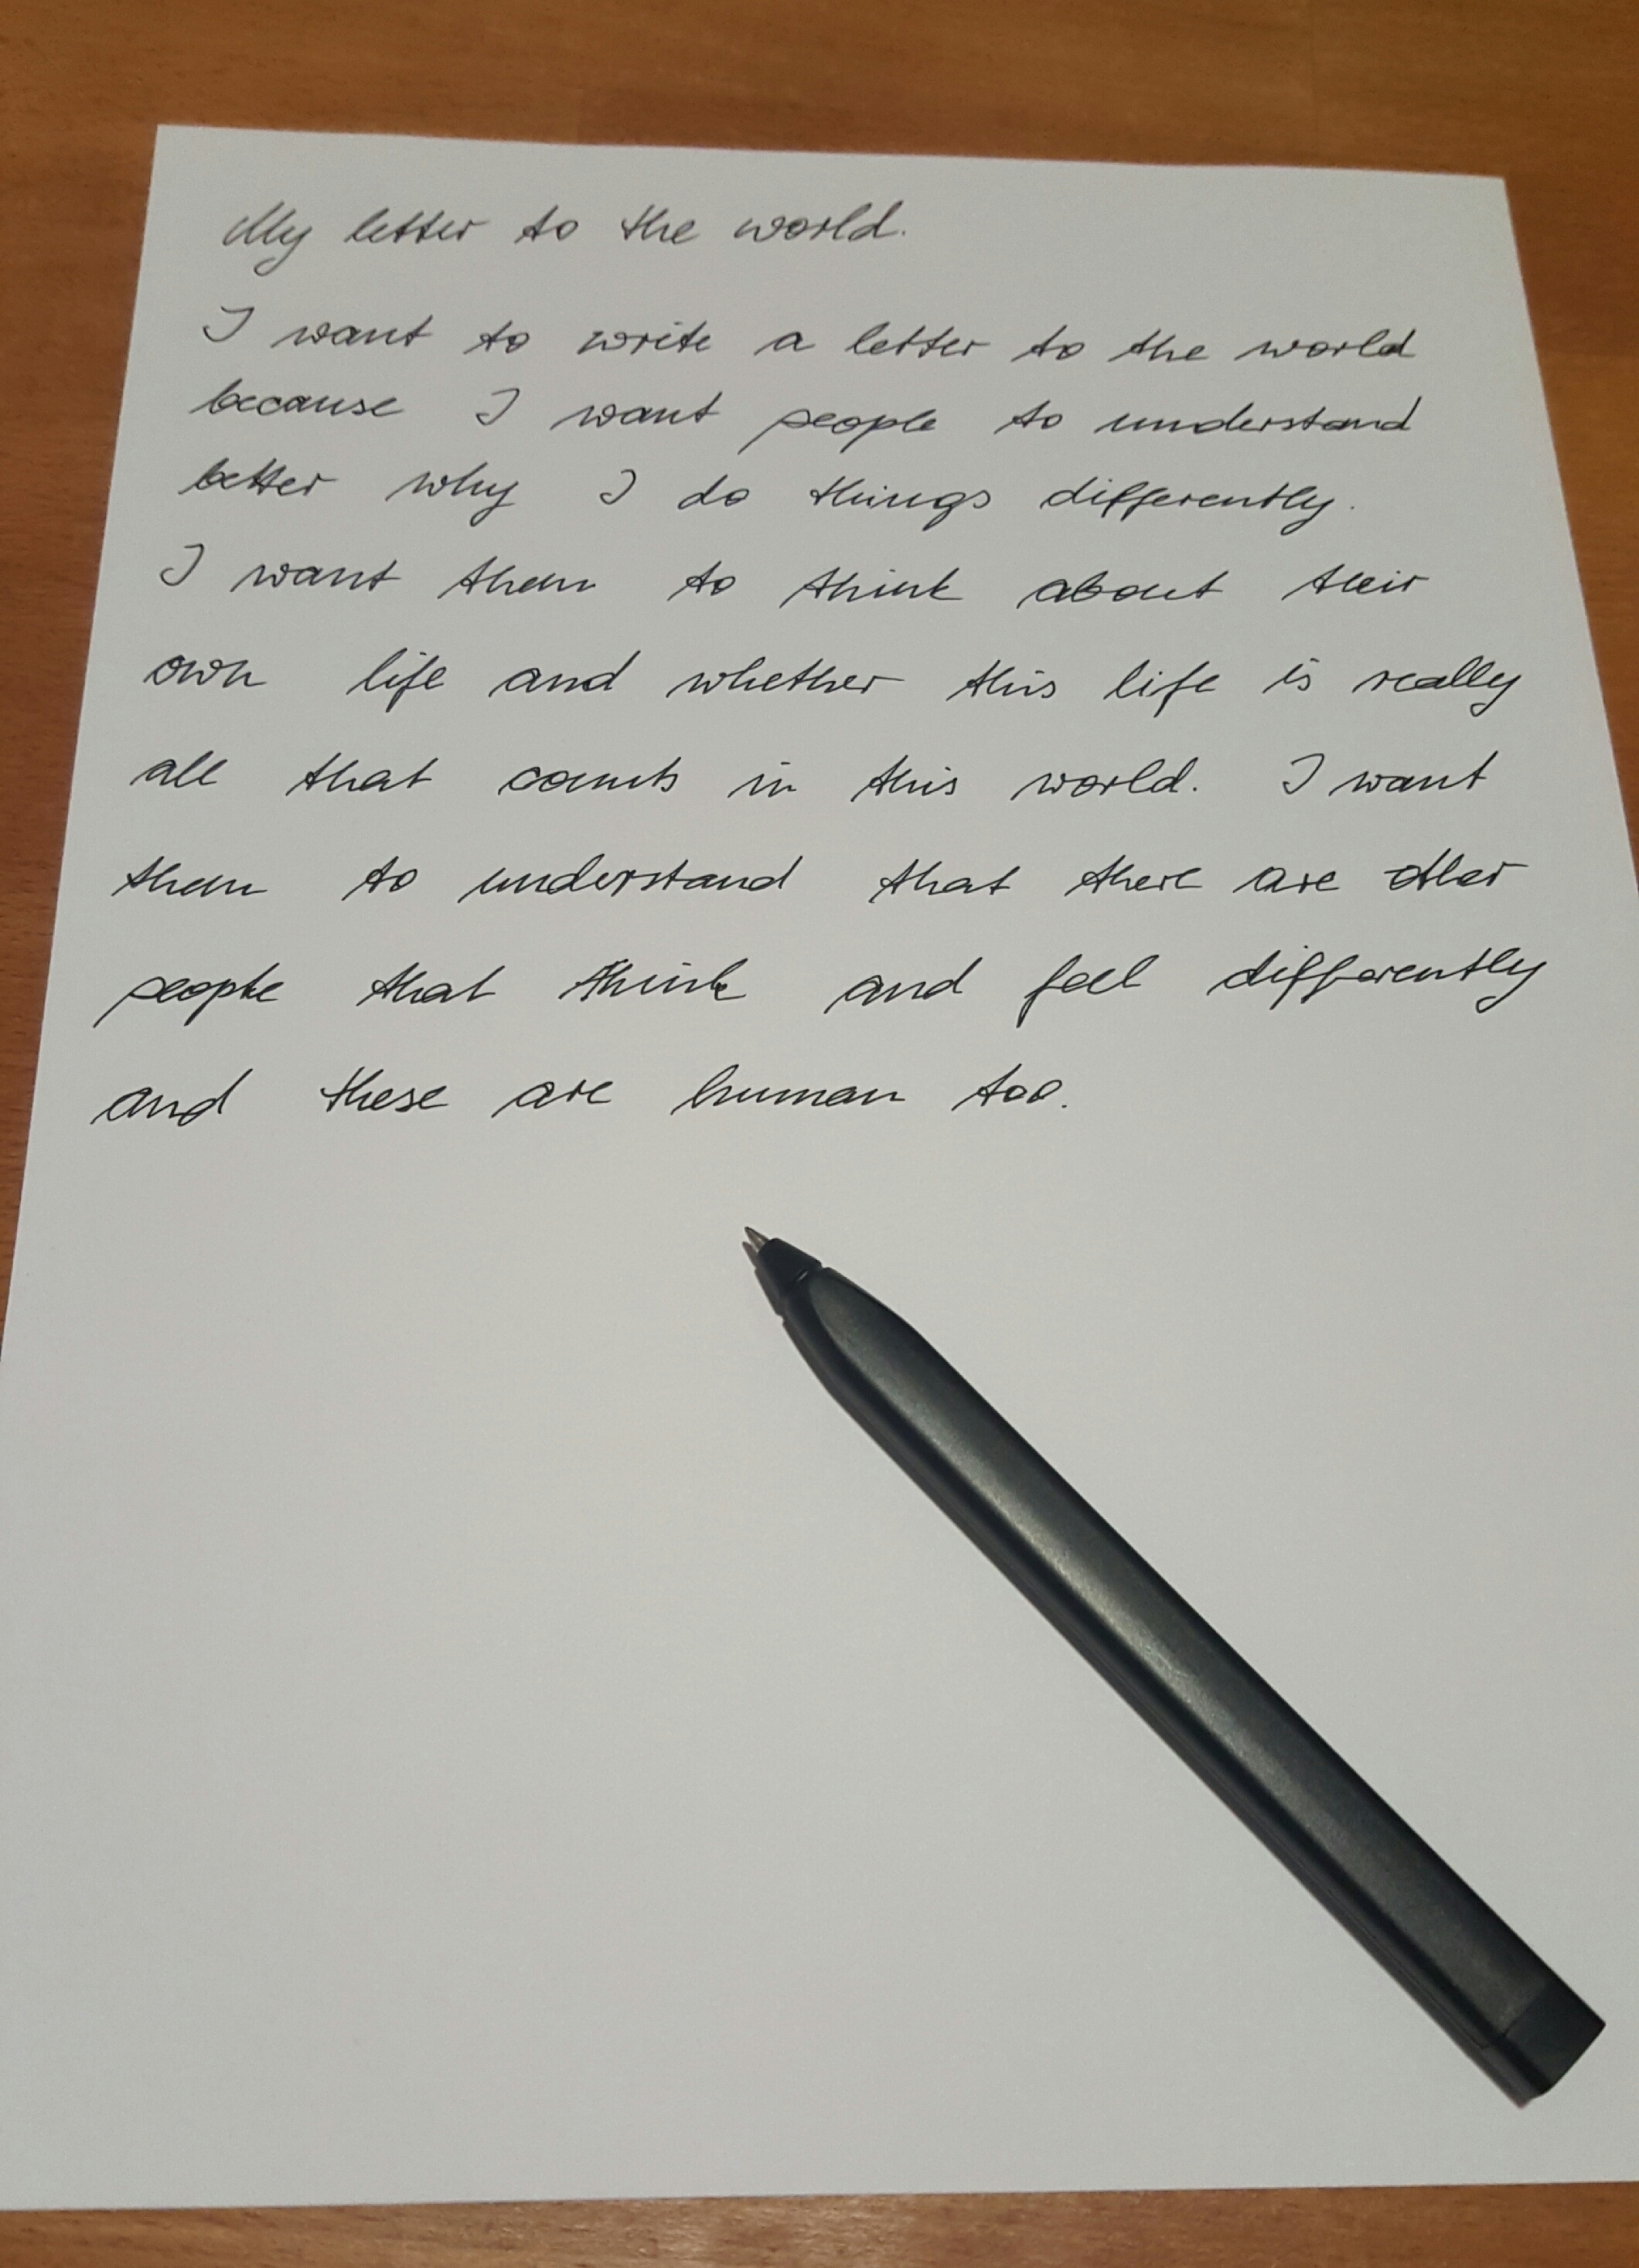 Update to the letters to the world from a client diagnosed with